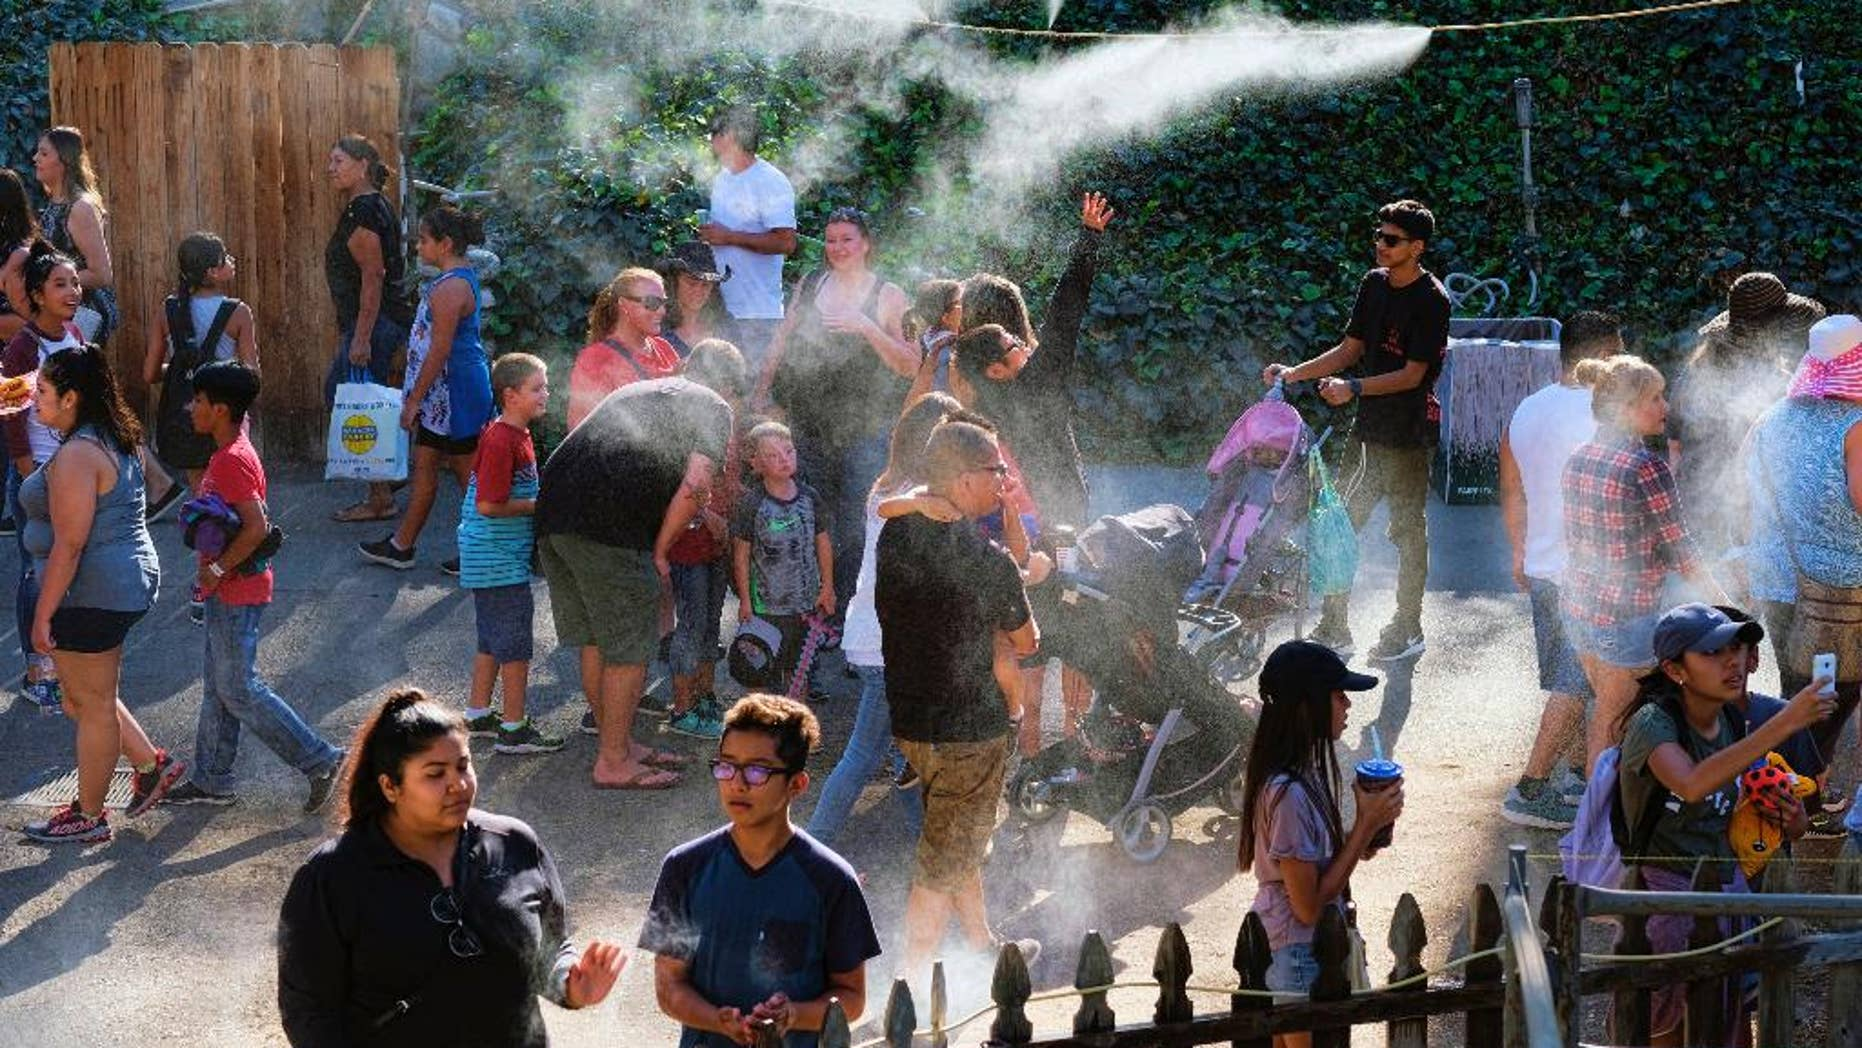 In this Saturday, Sept. 24, 2016 photo, visitors to the Los Angeles County fair cool off under outdoor misters in Pomona, Calif. Californians braced Monday, Sept. 26 for another hot autumn day as forecasters warned of soaring temperatures and potential wildfires due to hot, dry and windy conditions. (AP Photo/Richard Vogel)